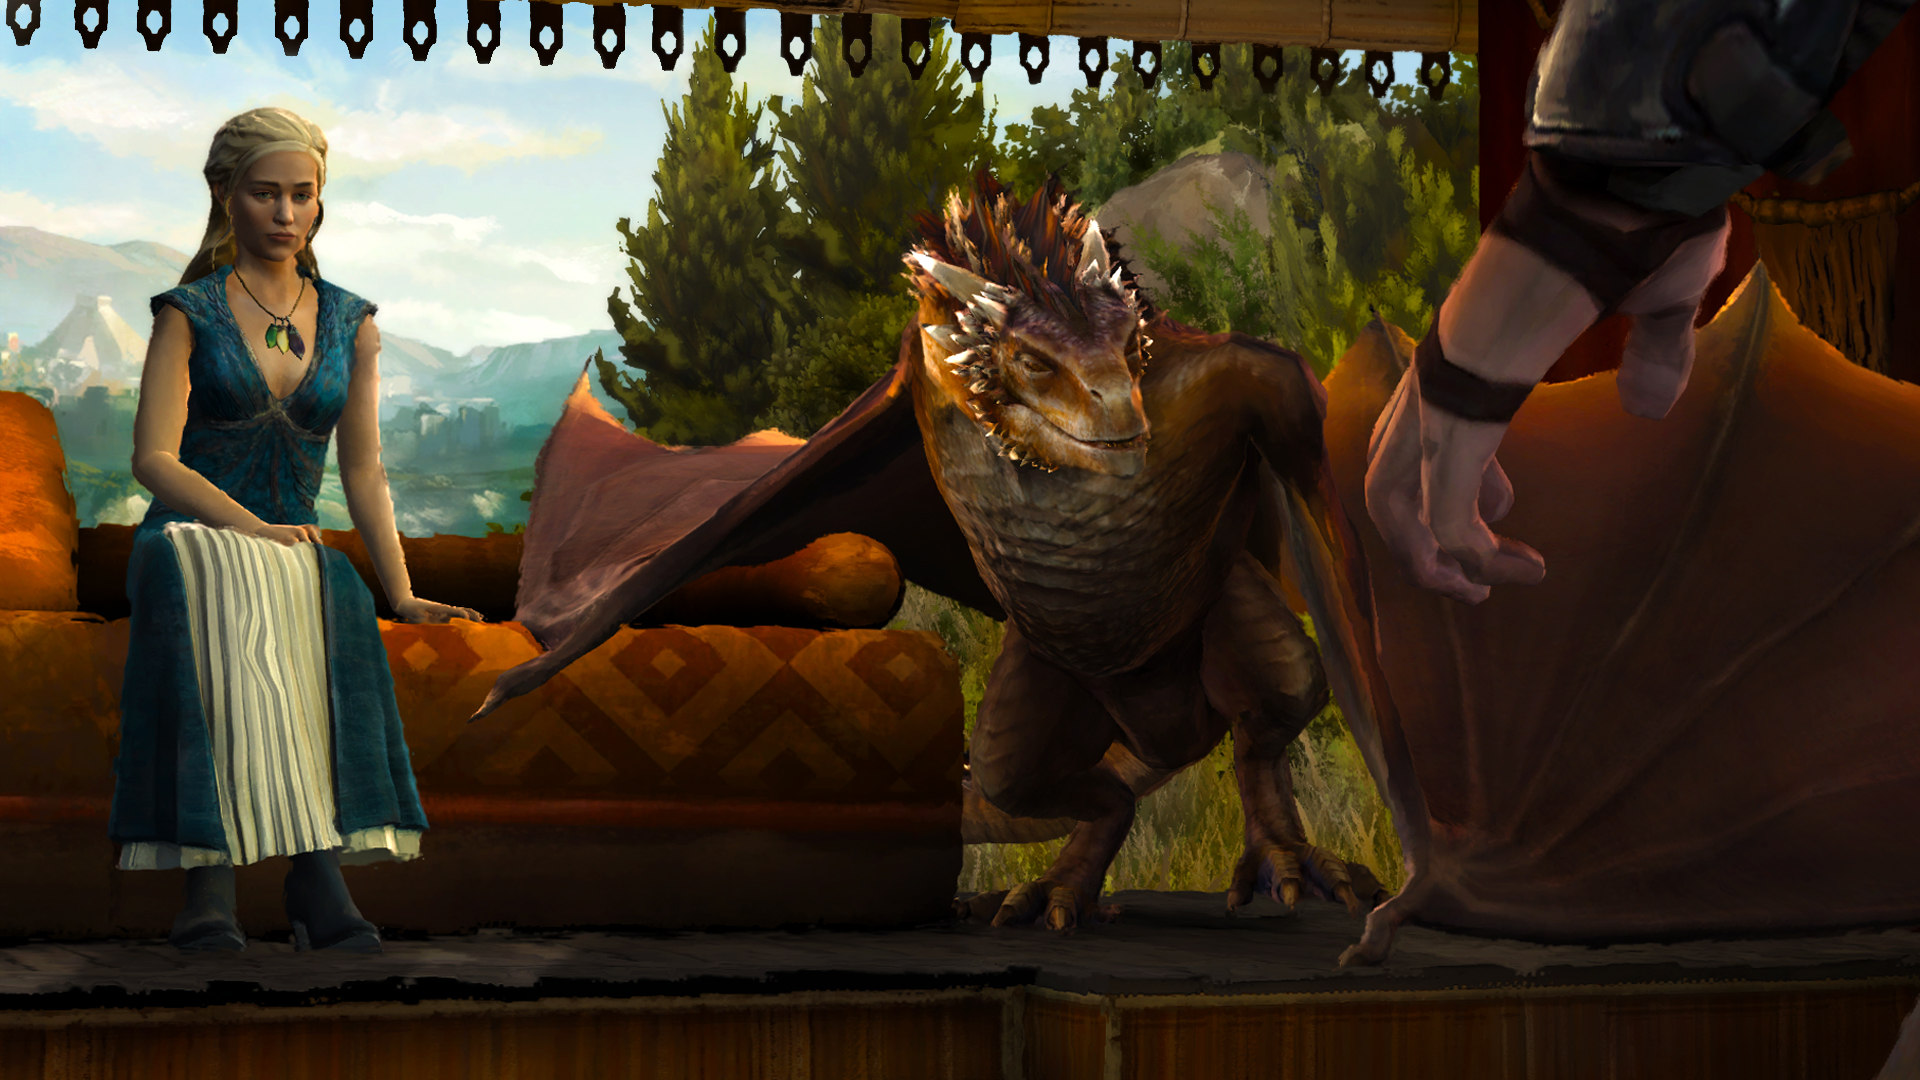 Game of Thrones - A Telltale Games Series image 2